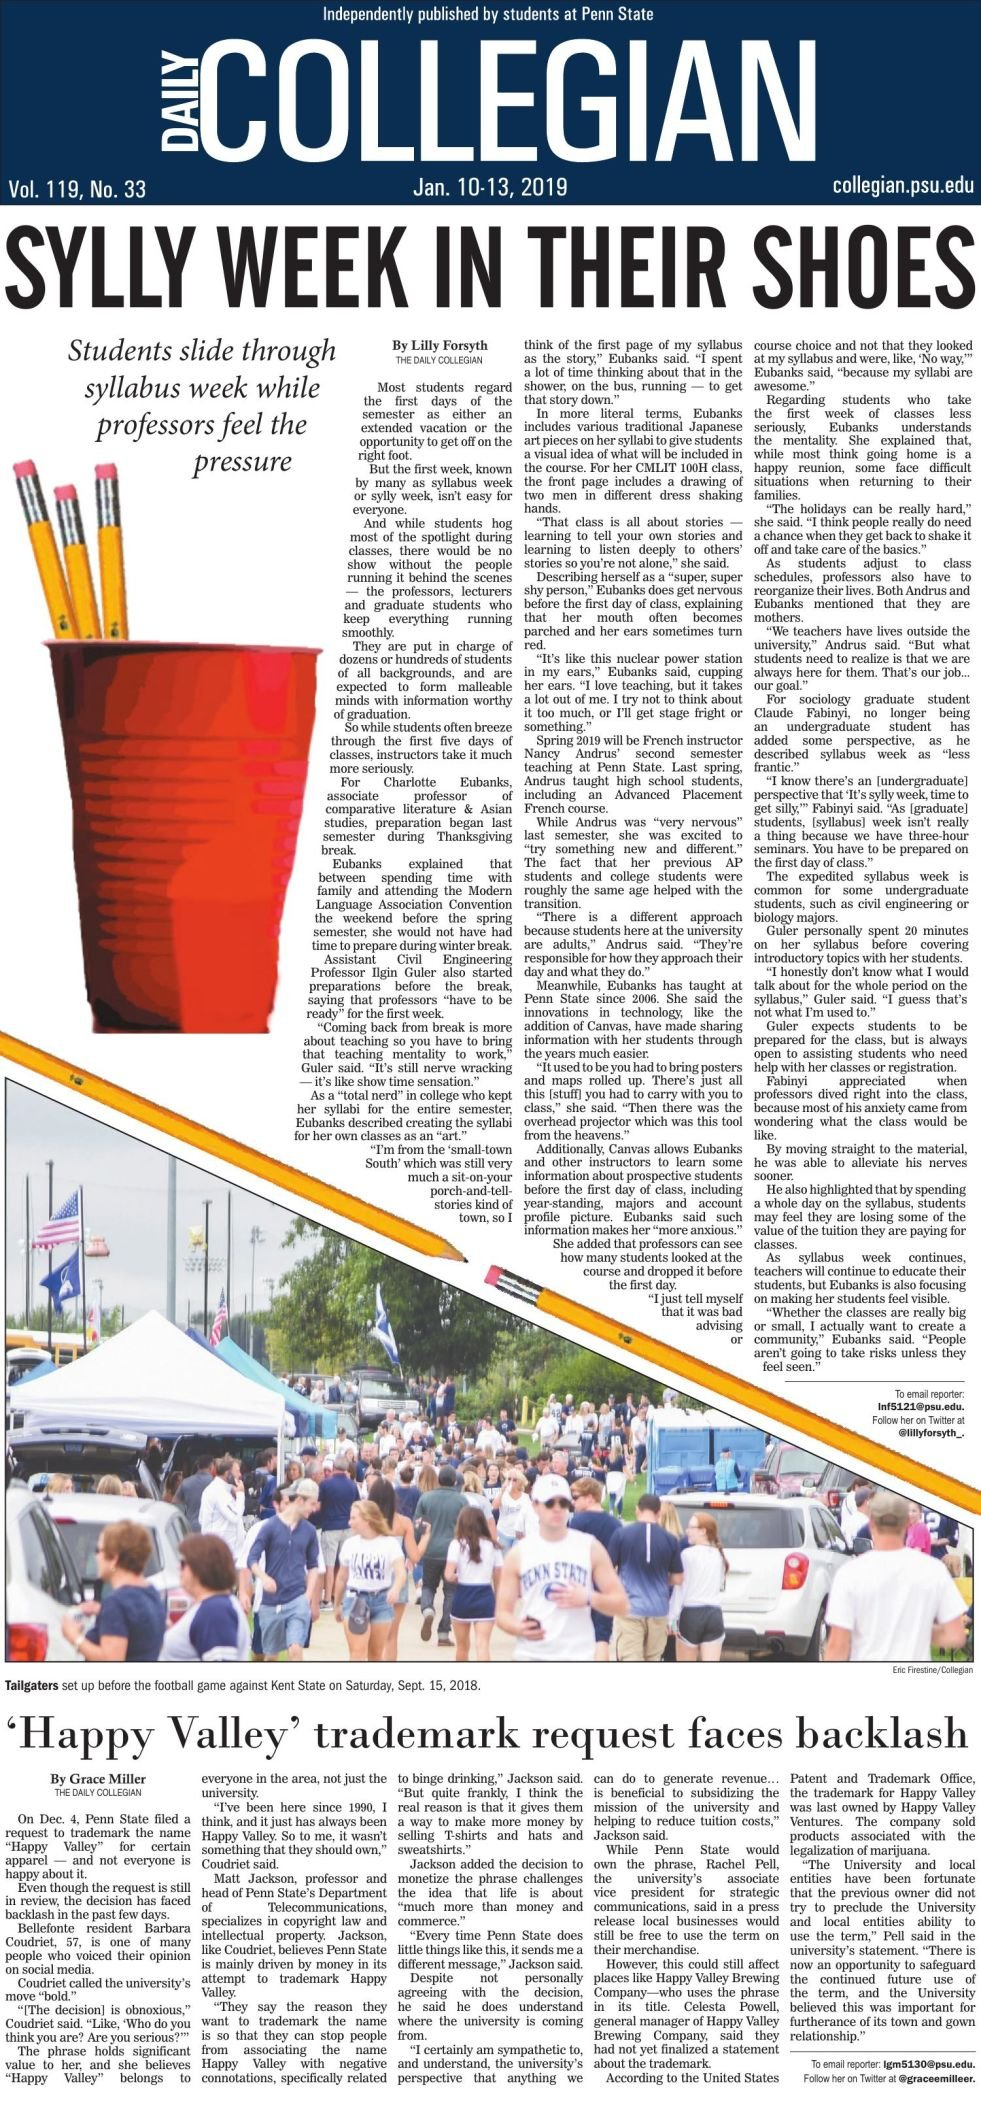 The Daily Collegian for Jan. 10, 2019